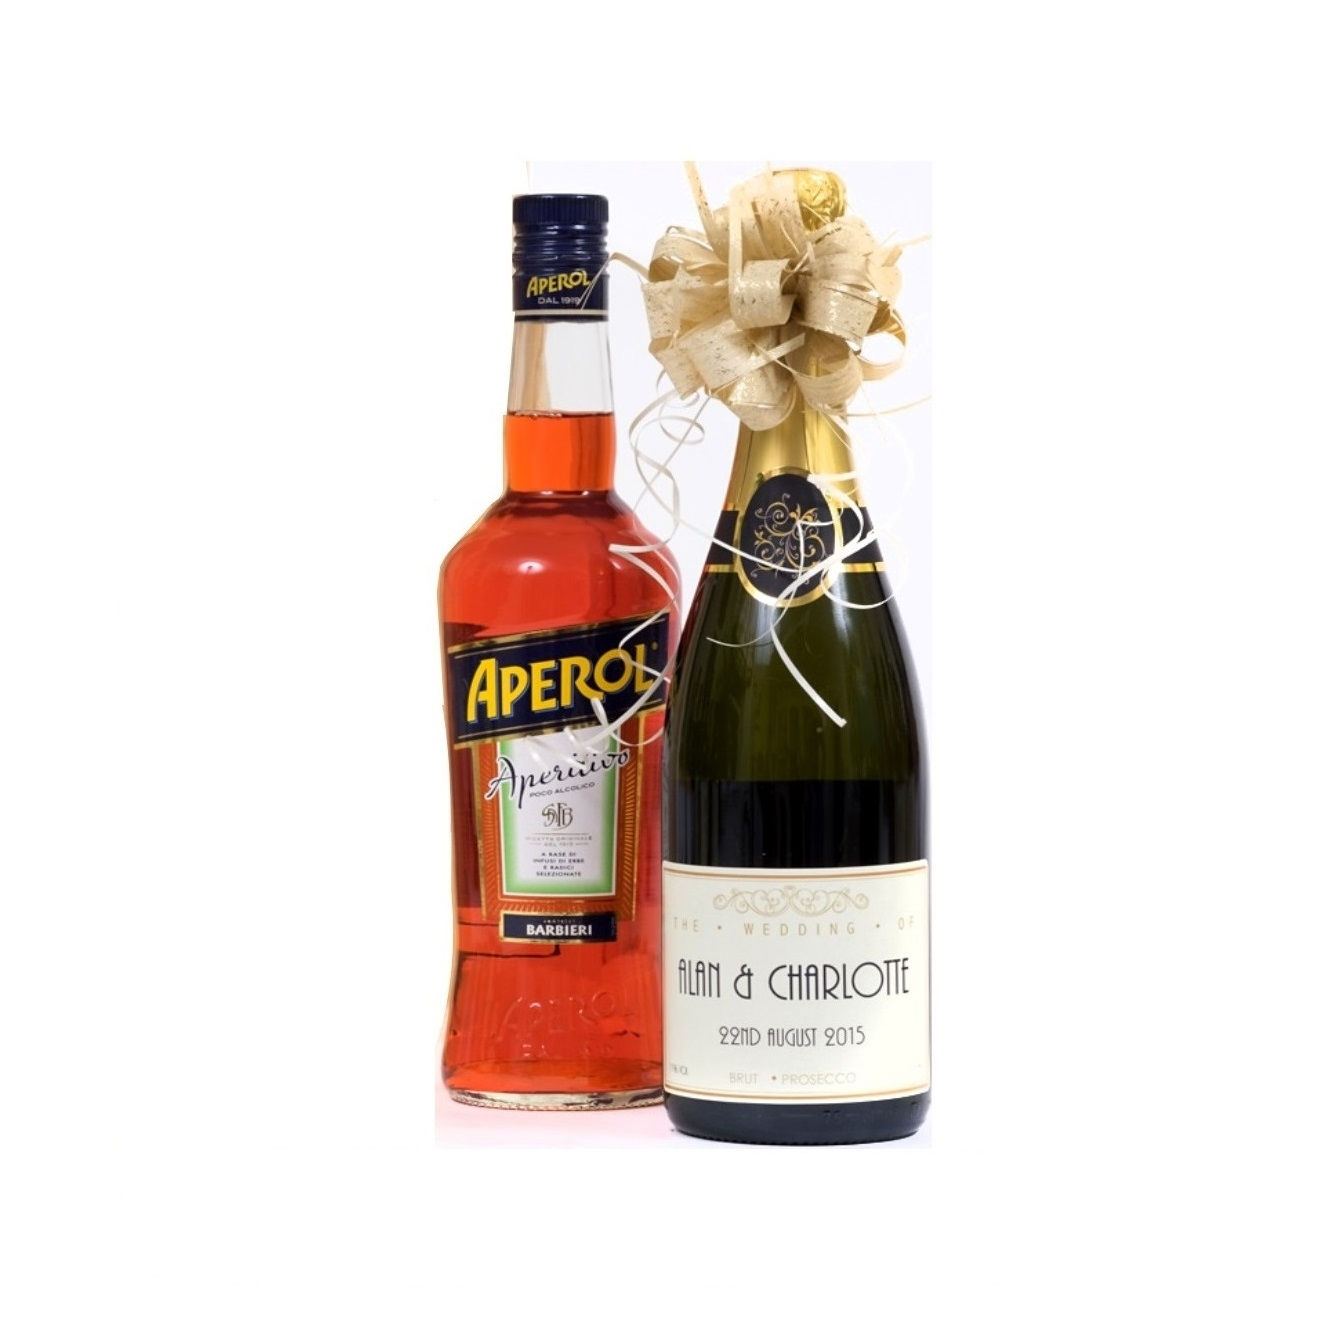 Personalised Prosecco & Aperol Spritz Bottle Set